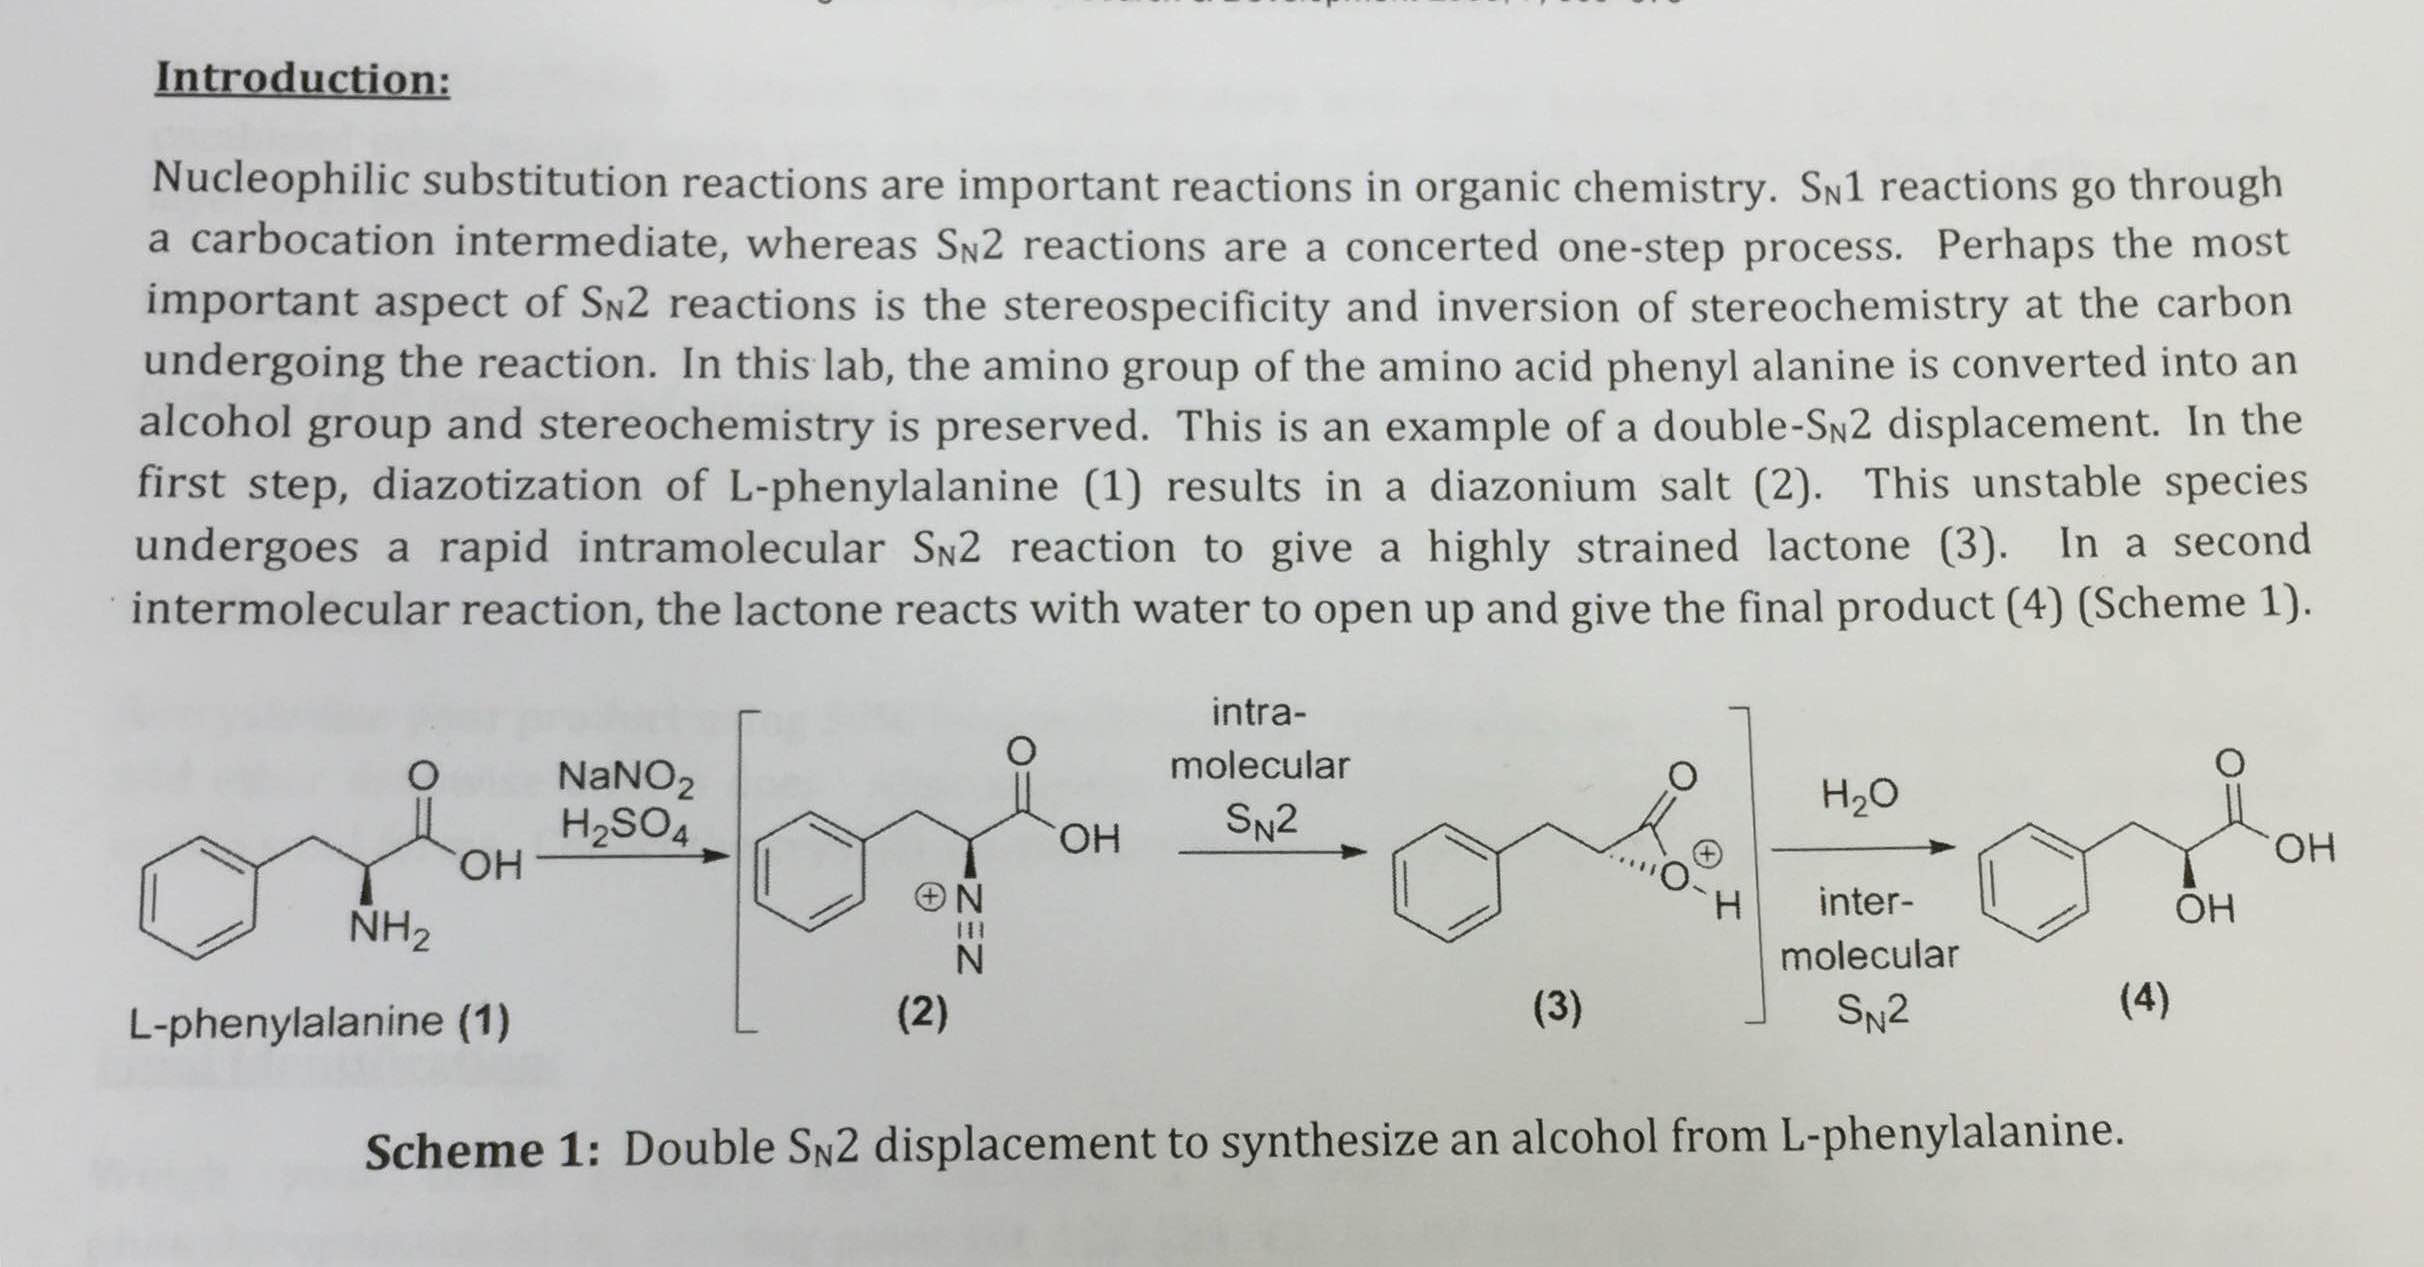 an introduction to the nucleophilic substitution reactions Introduction to aliphatic nucleophilic substitution aliphatic nucleophilic substitution is a mouthful, but each piece tells you something important about this kind of reaction in substitution reactions, one piece of a molecule is replaced by another.